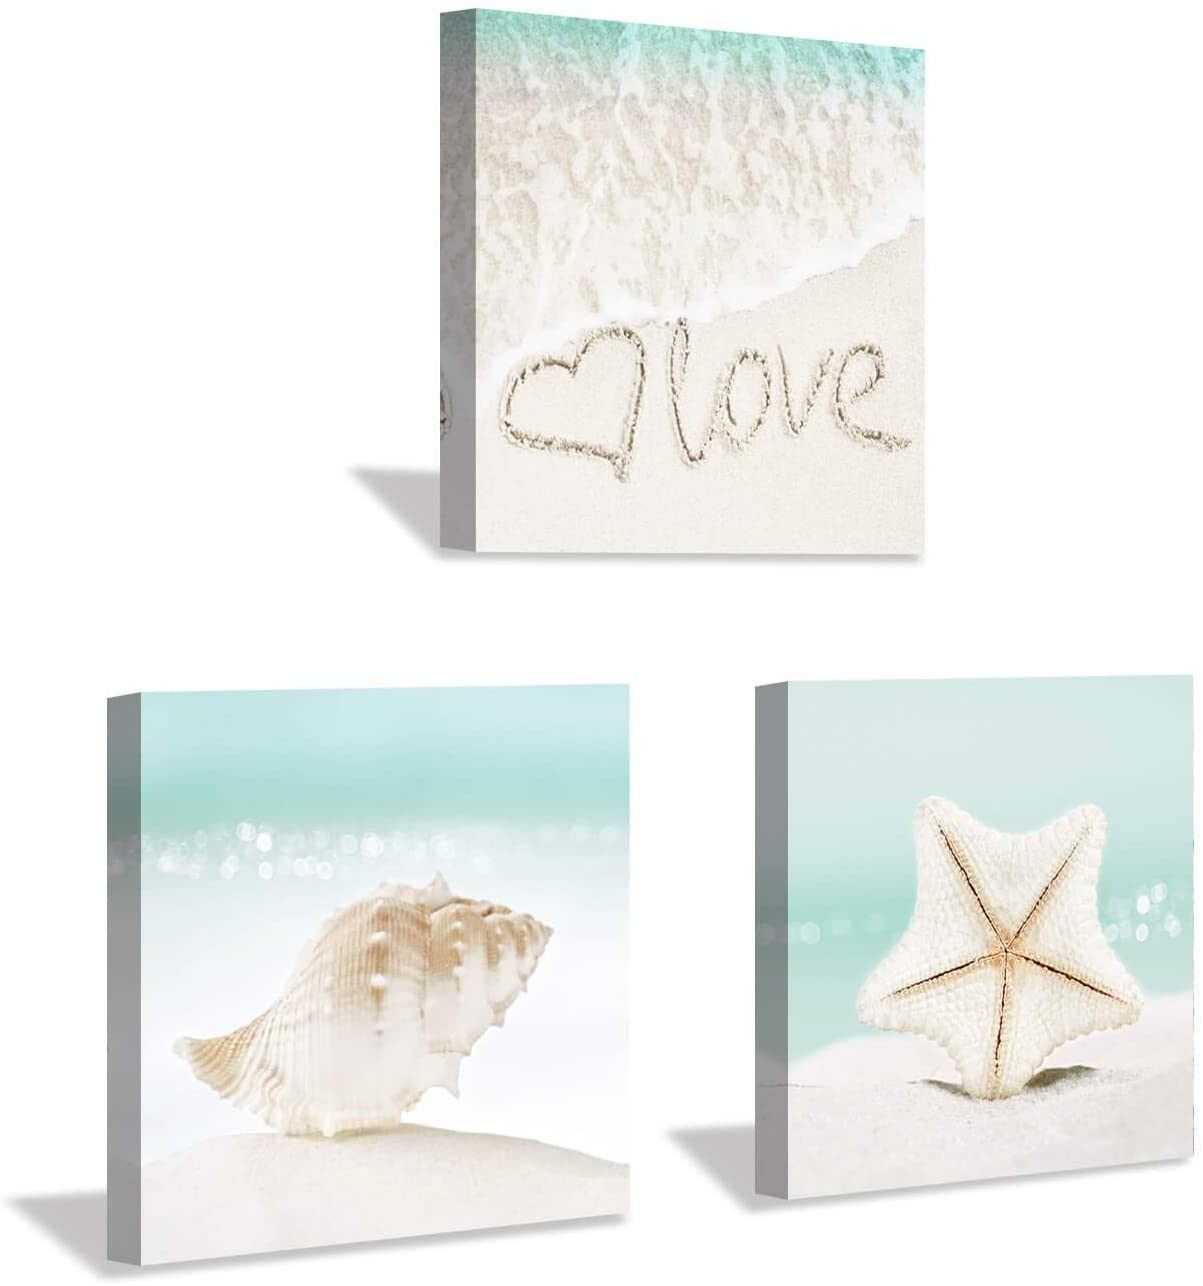 Beach Picture Artwork Seascape Painting: Seashell and Starfish Wall Art Print on Canvas for Bathroom (12 x 12 x 3 Panels)